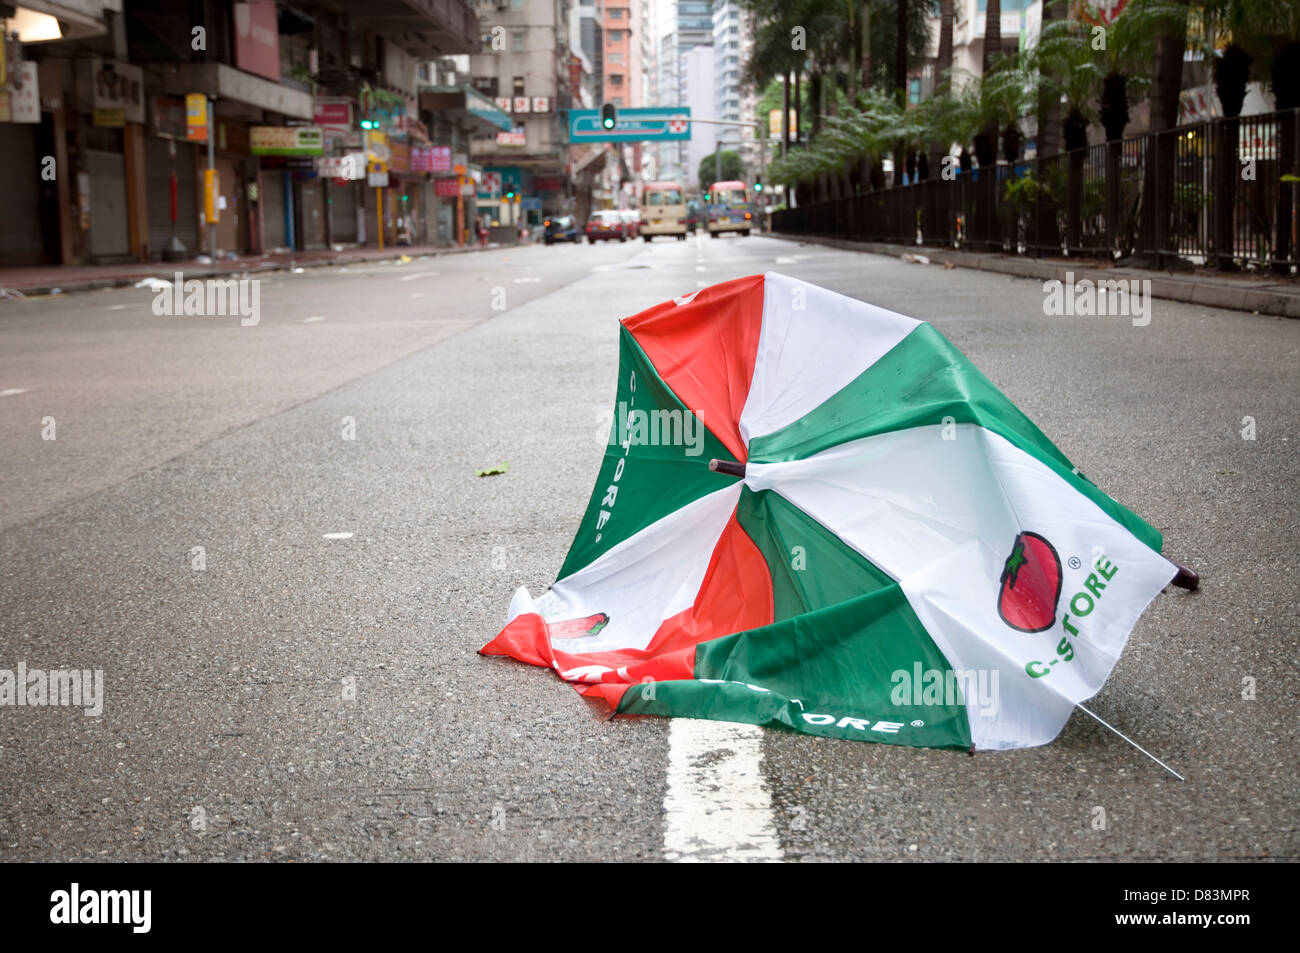 Broken umbrella in Hennessey Road after a tropical storm, Hong Kong - Stock Image